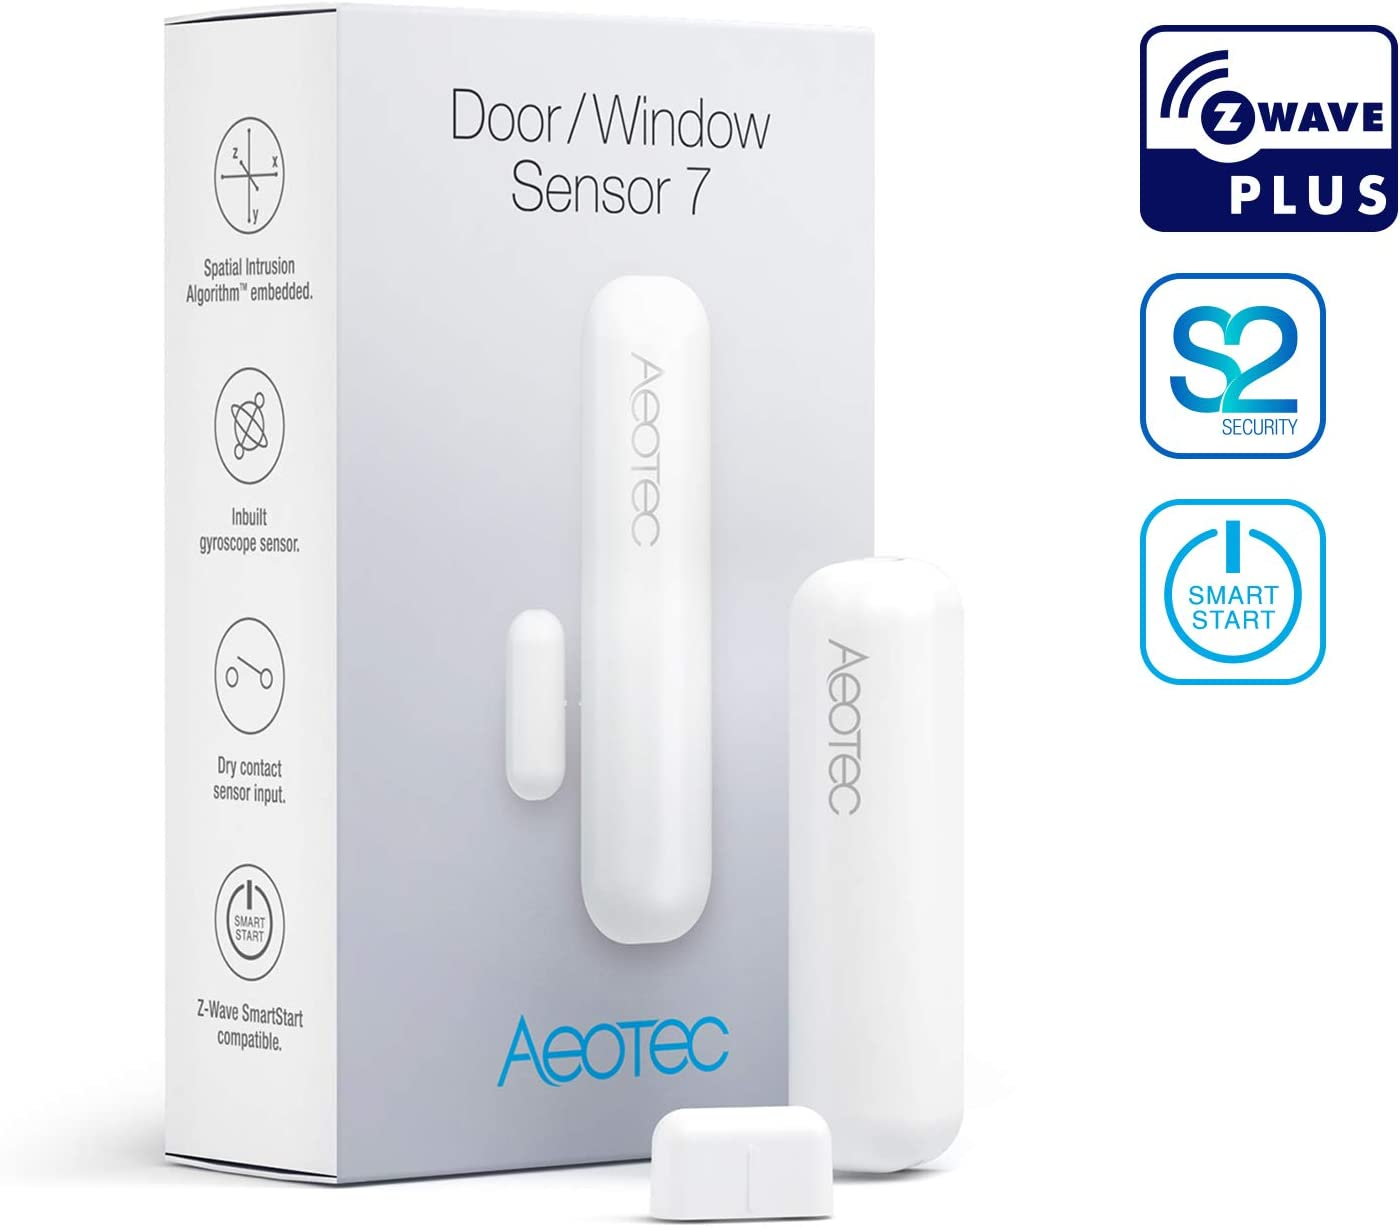 Aeotec Door/Window Sensor 7, Z-Wave Plus S2 Smart Start, 3-in-1 with Dry Contact & Gyro sensor, 3 Year Battery Life, White